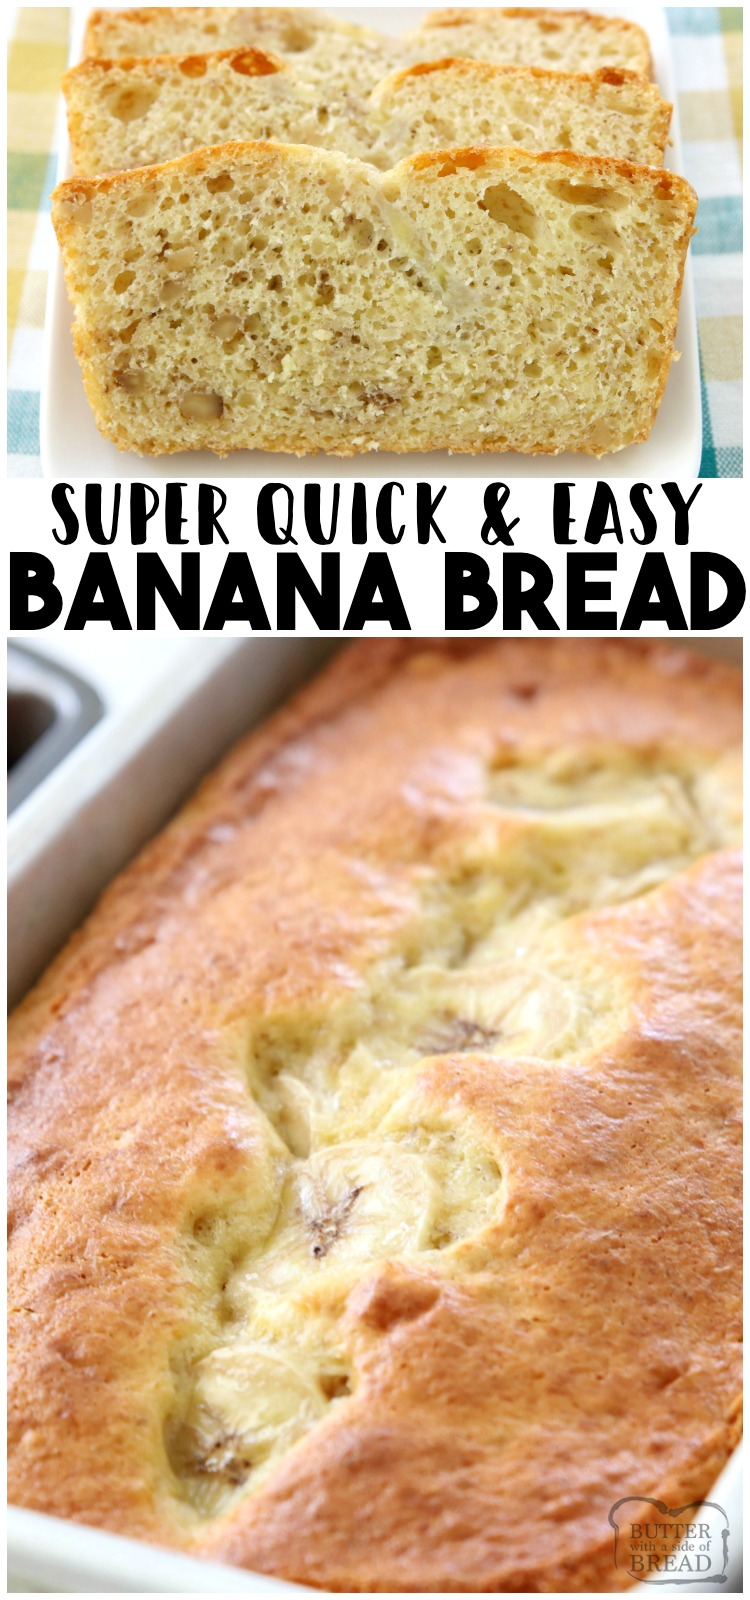 Easy Banana Bread is the simplest homemade banana bread recipe ever! Made with ripe bananas, a cake mix & 2 other simple ingredients. #banana #bread #quickbread #baking #recipe from BUTTER WITH A SIDE OF BREAD